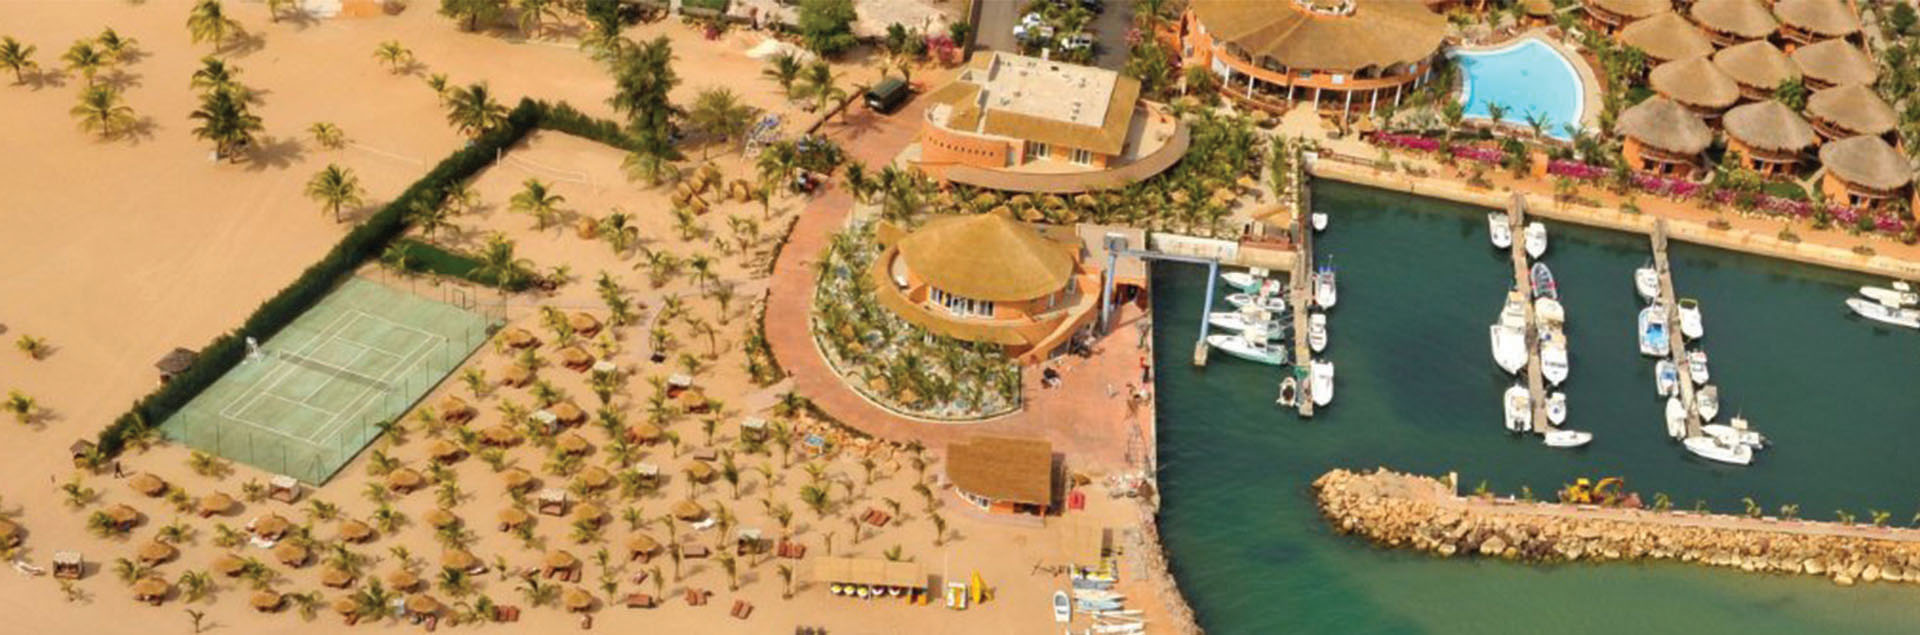 hotel-resort-spa-hotel-senegal